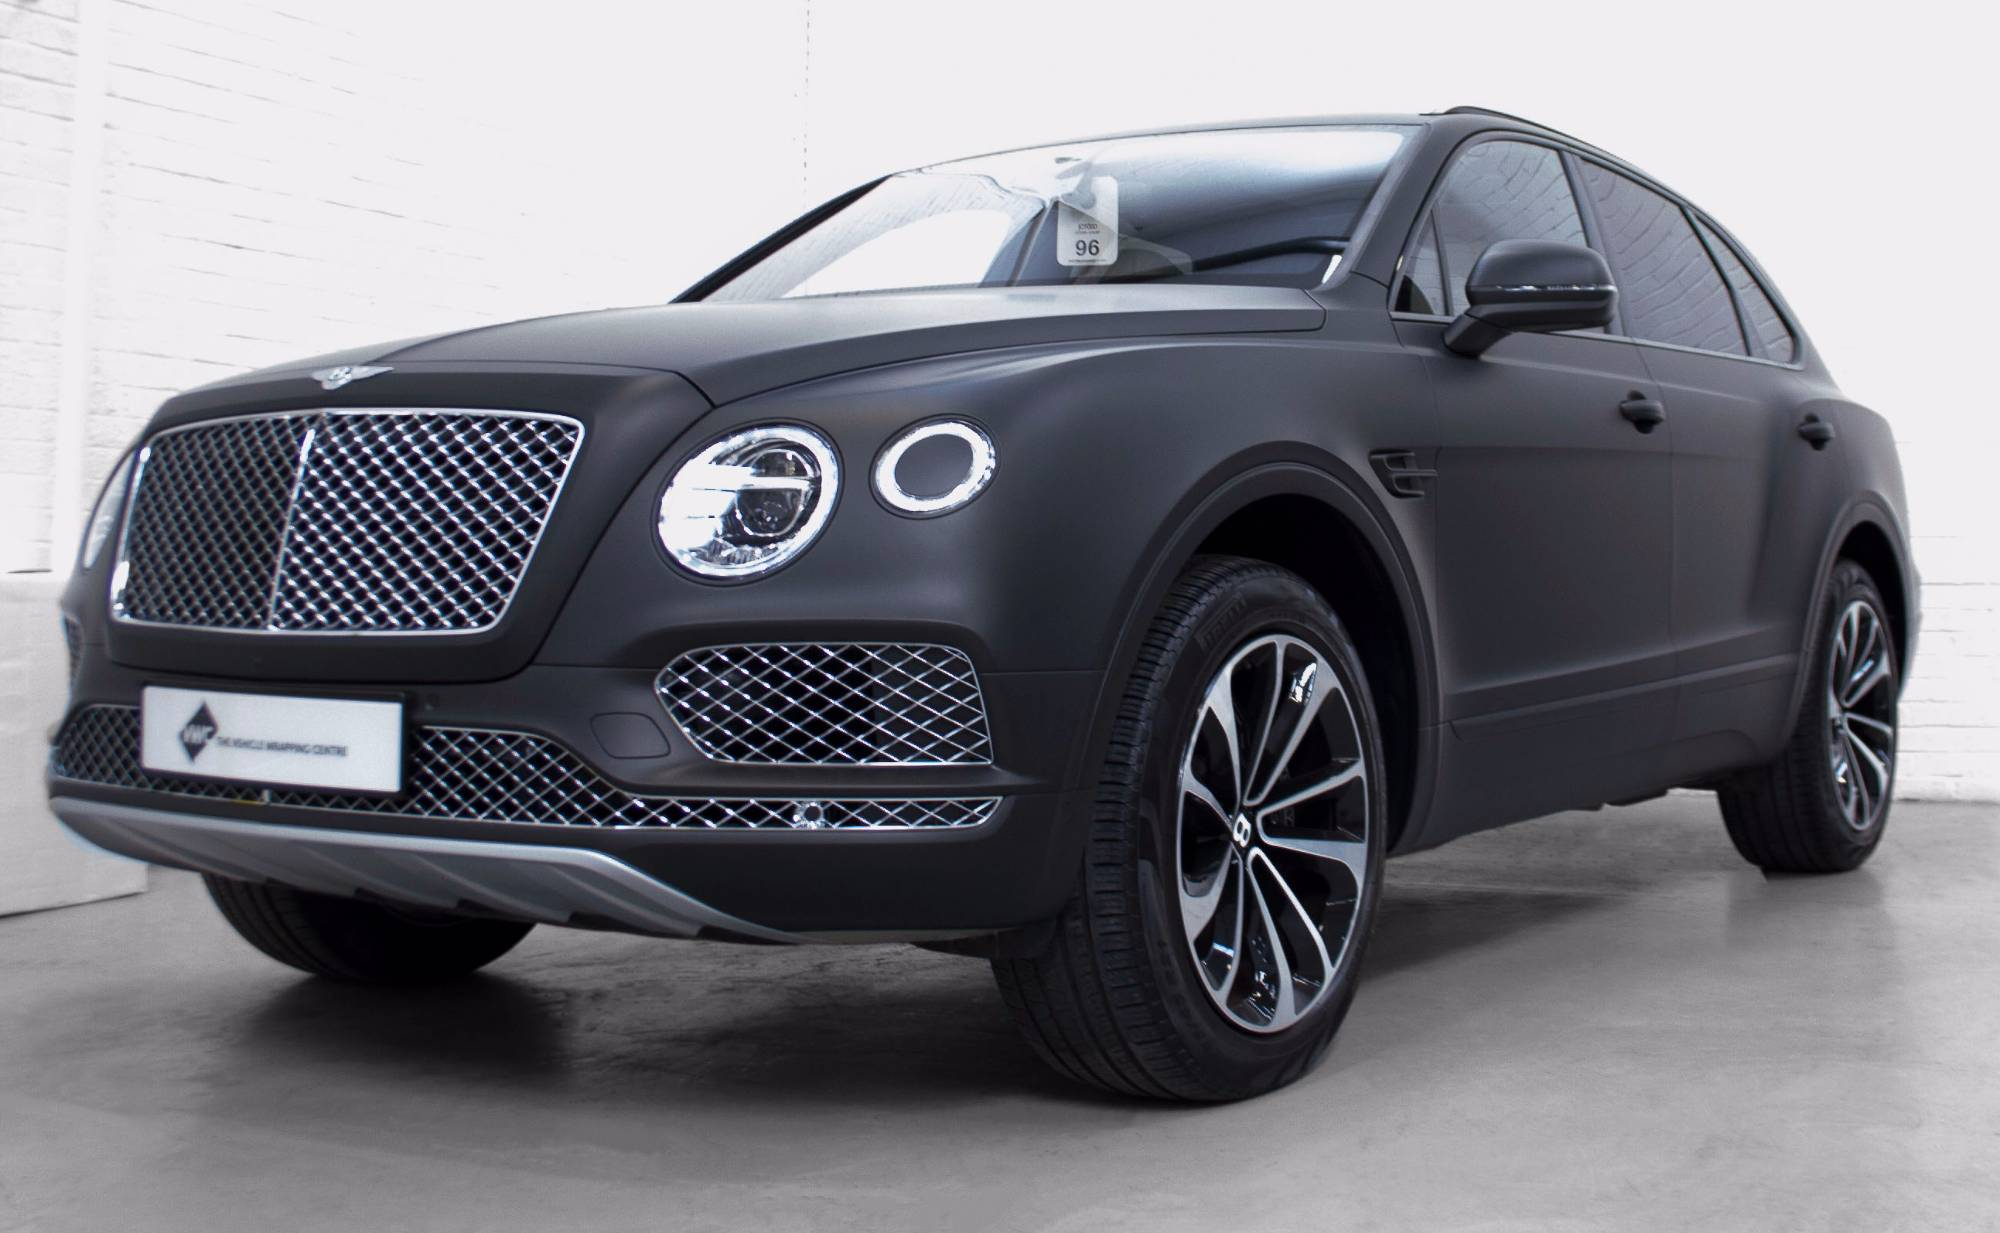 Bentley Bentayga 3m Matte Black Personal Wrapping Project